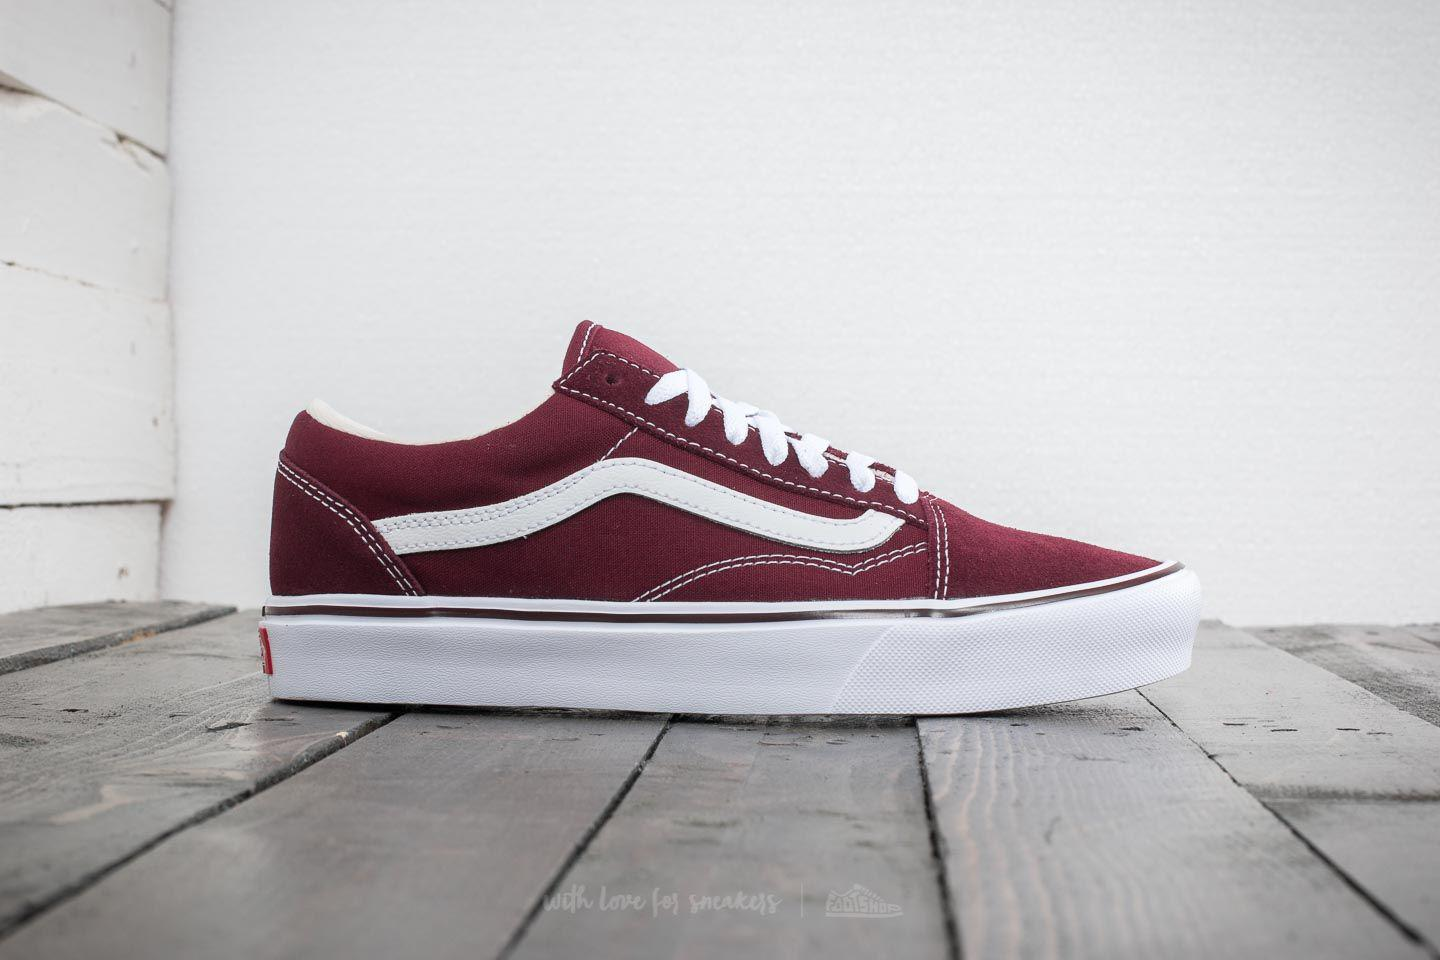 55cff9ea6c6e Lyst - Vans Old Skool Lite (suede canvas) Port Royal